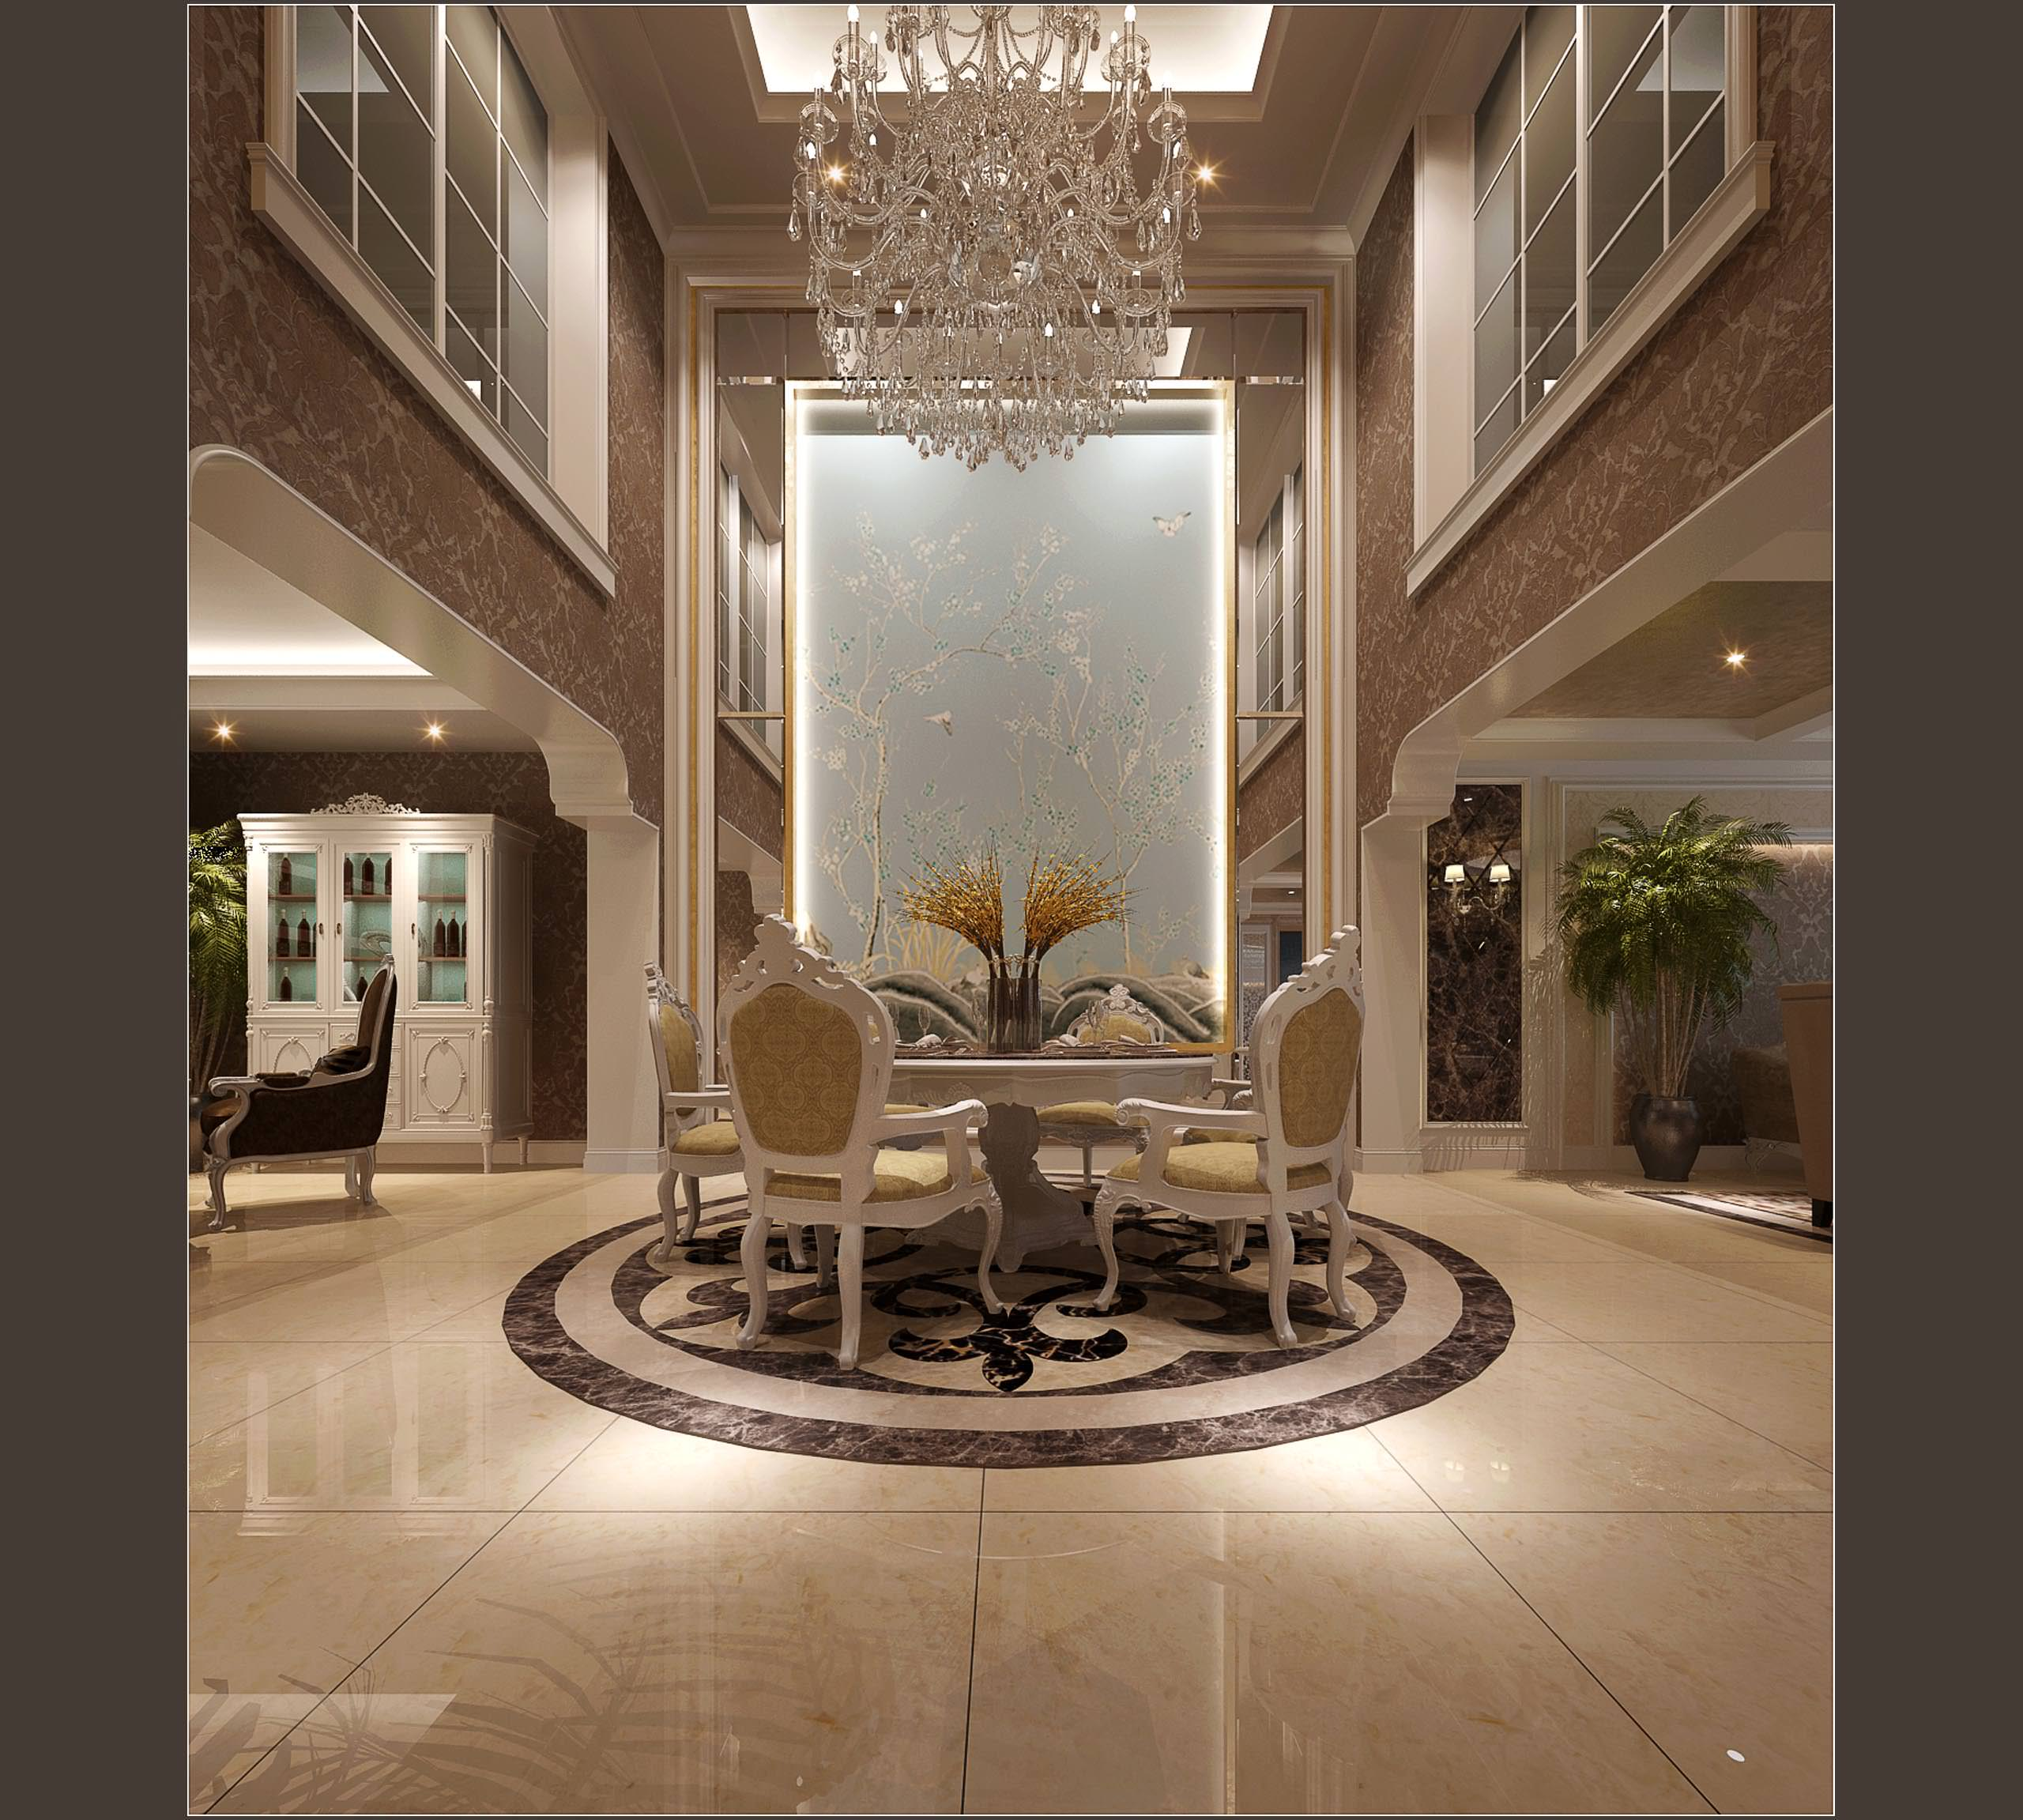 Luxurious hotel hall and living room decor 3d model for Hotel decor items